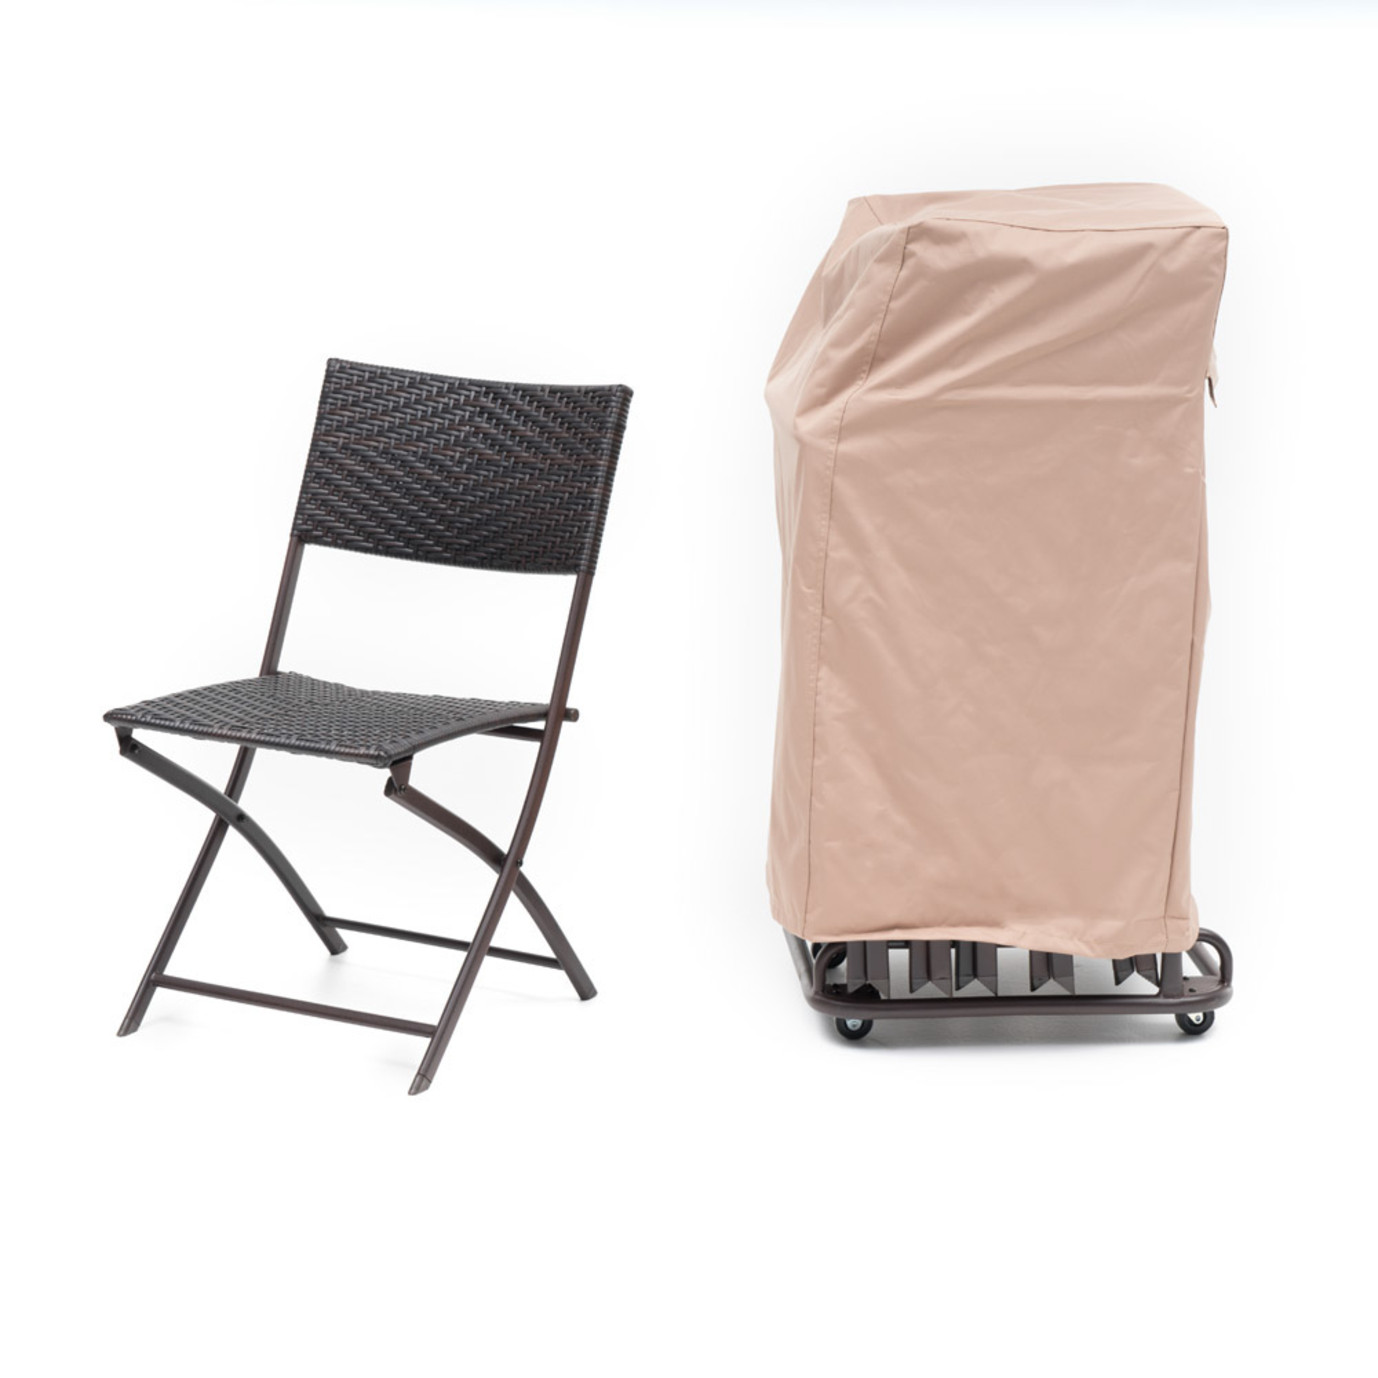 Perfect Folding Chair Set 6pk with Cart and Cover